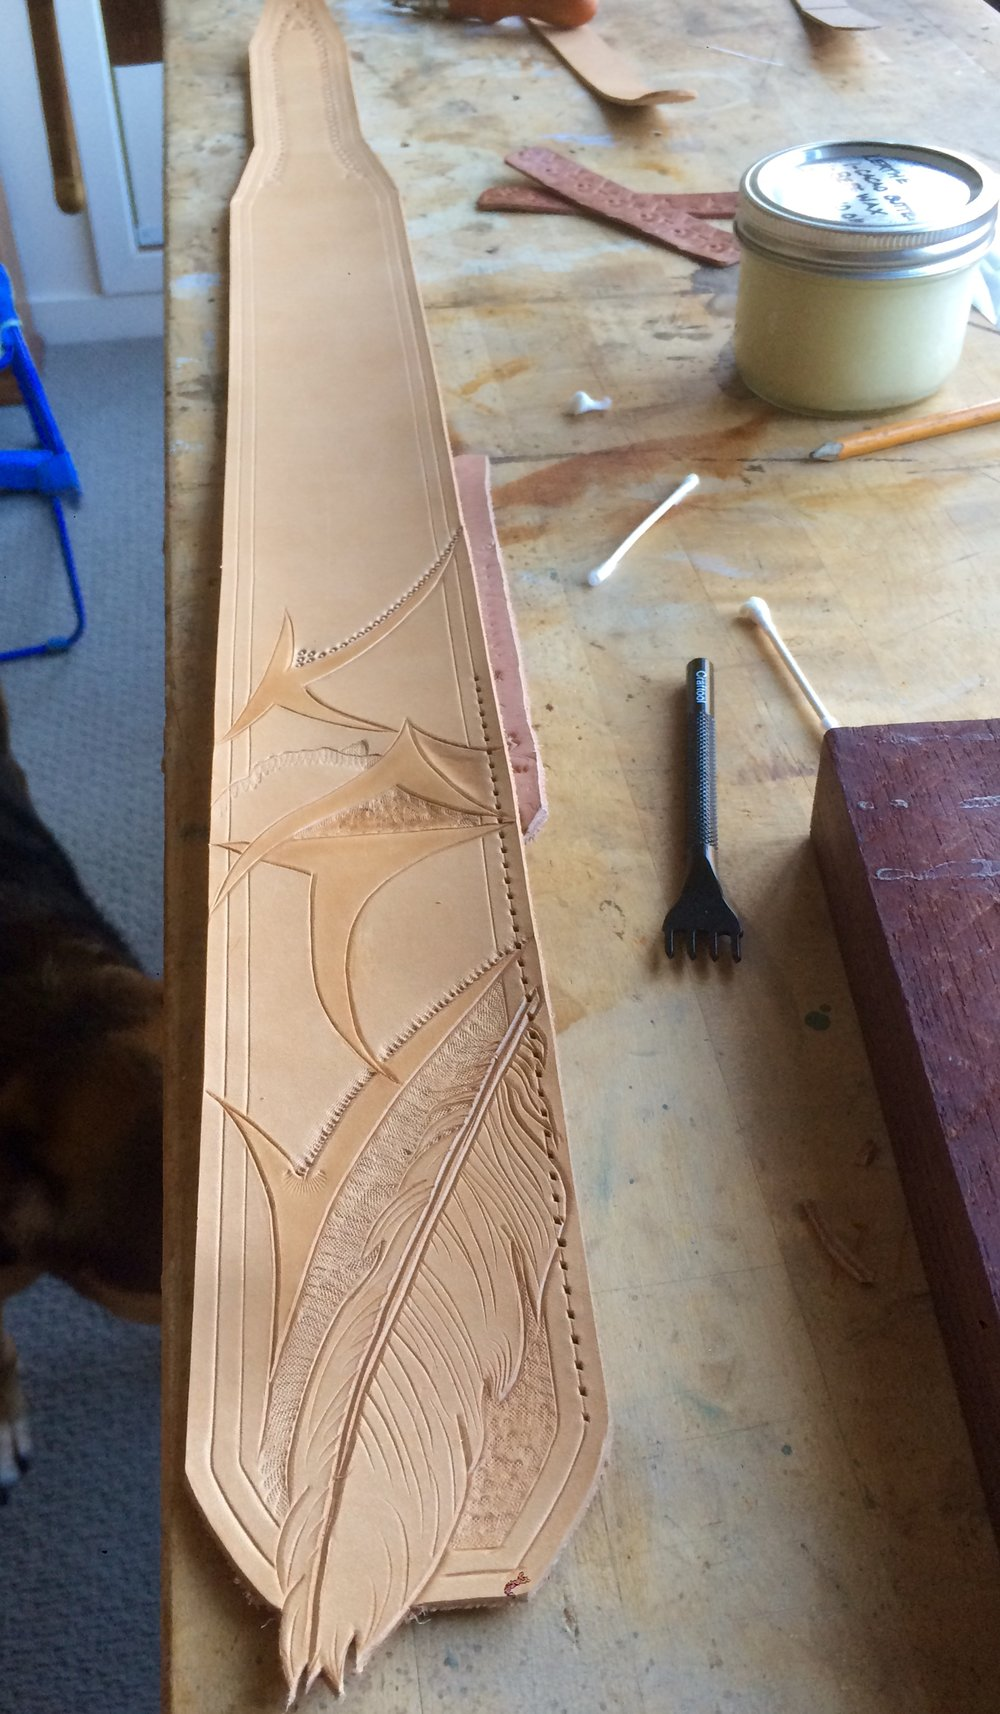 Ethically sourced vegetable tanned leather guitar strap in progress